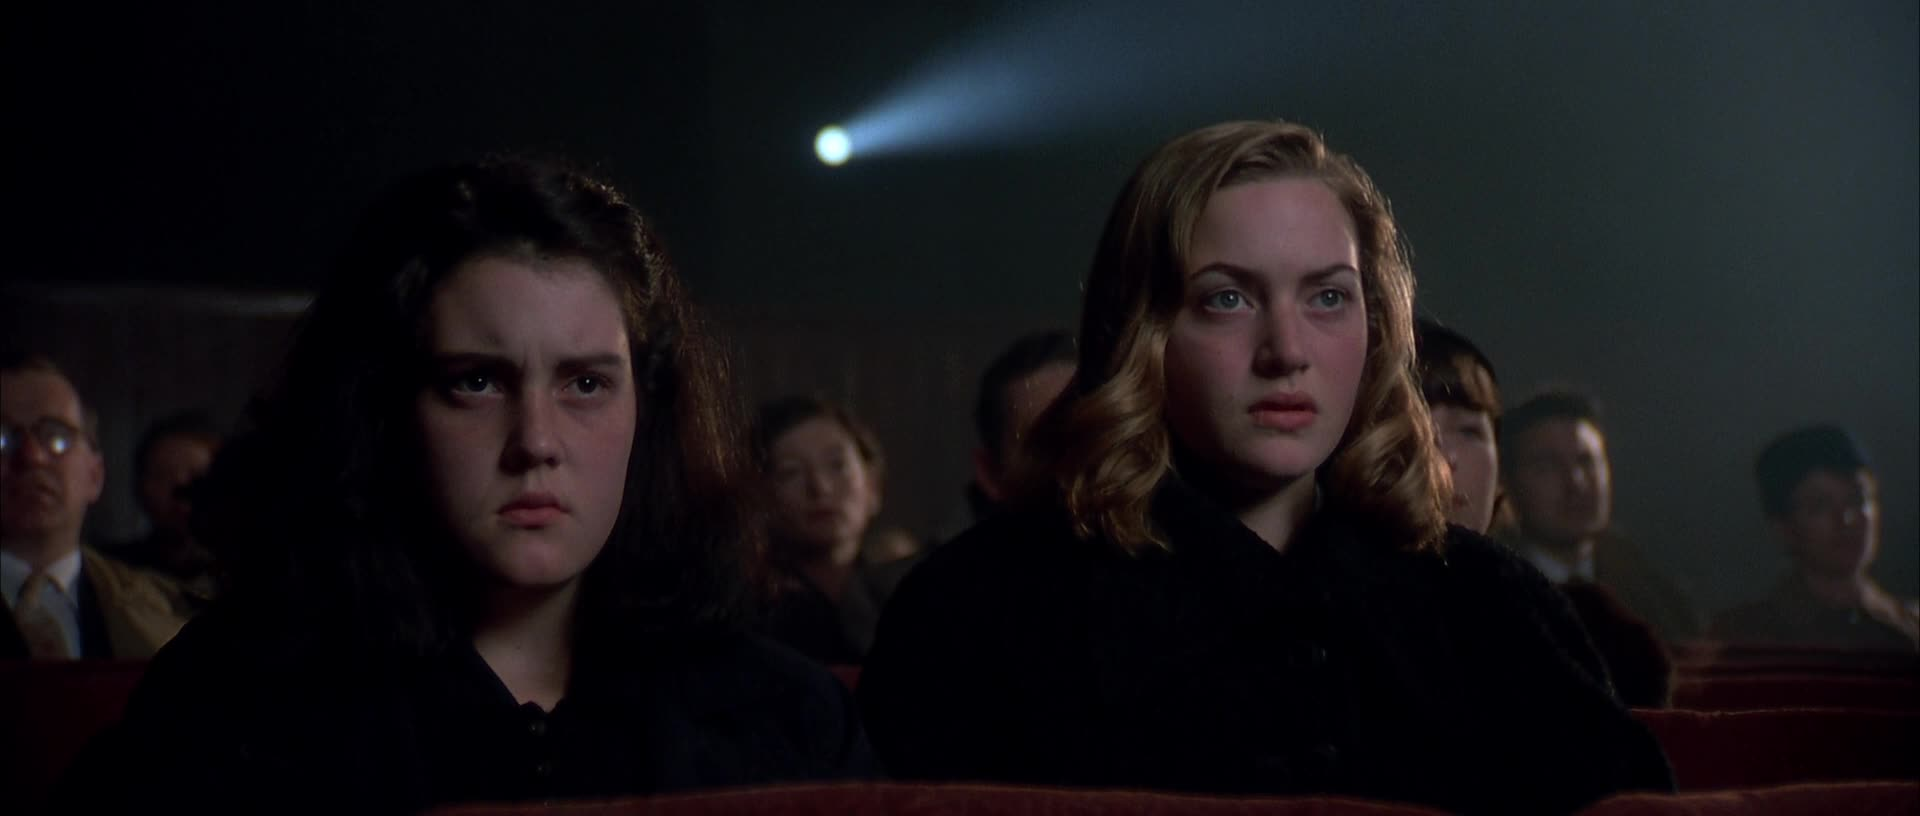 heavenly creatures Watch heavenly creatures movie online for free based on the true story of juliet hulme and pauline parker, two close friends who share a love of.